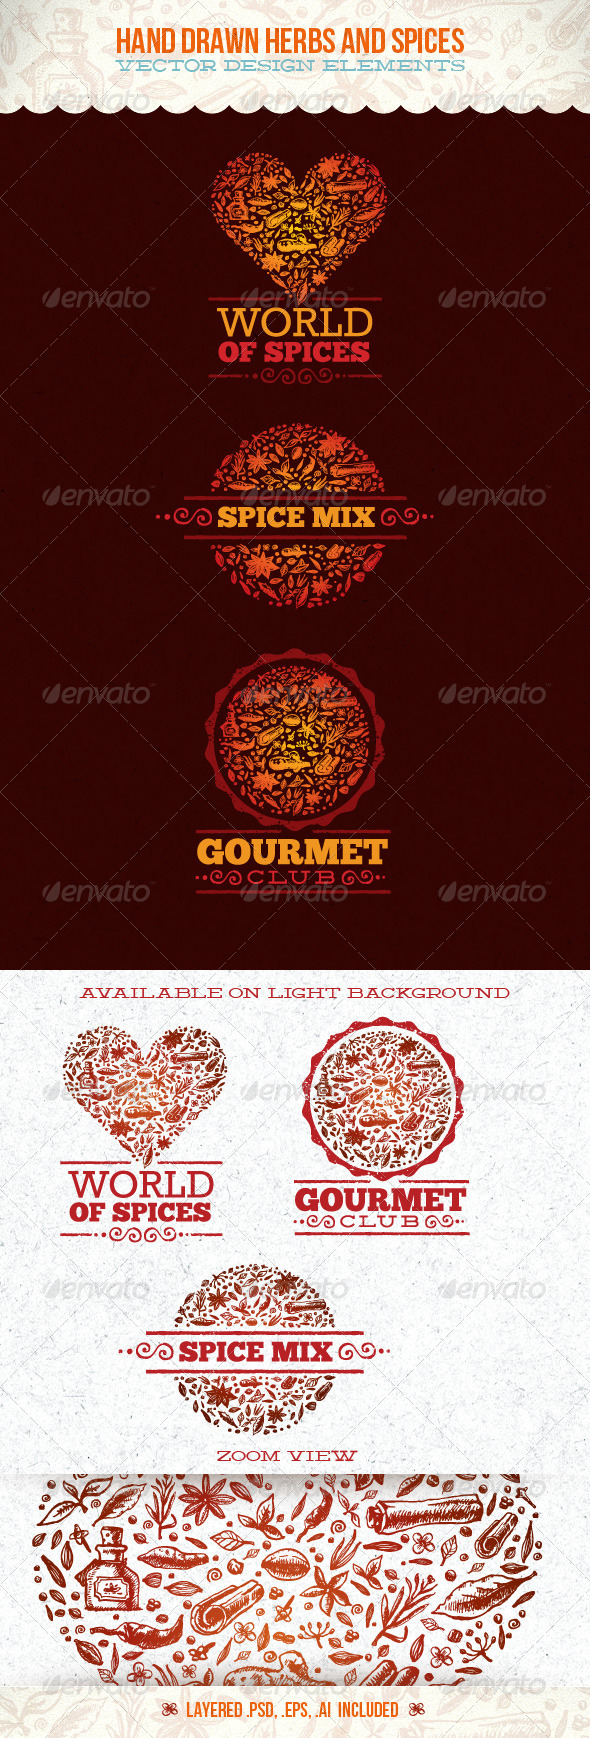 GraphicRiver Spices and Herbs Vector Design Elements 4900005